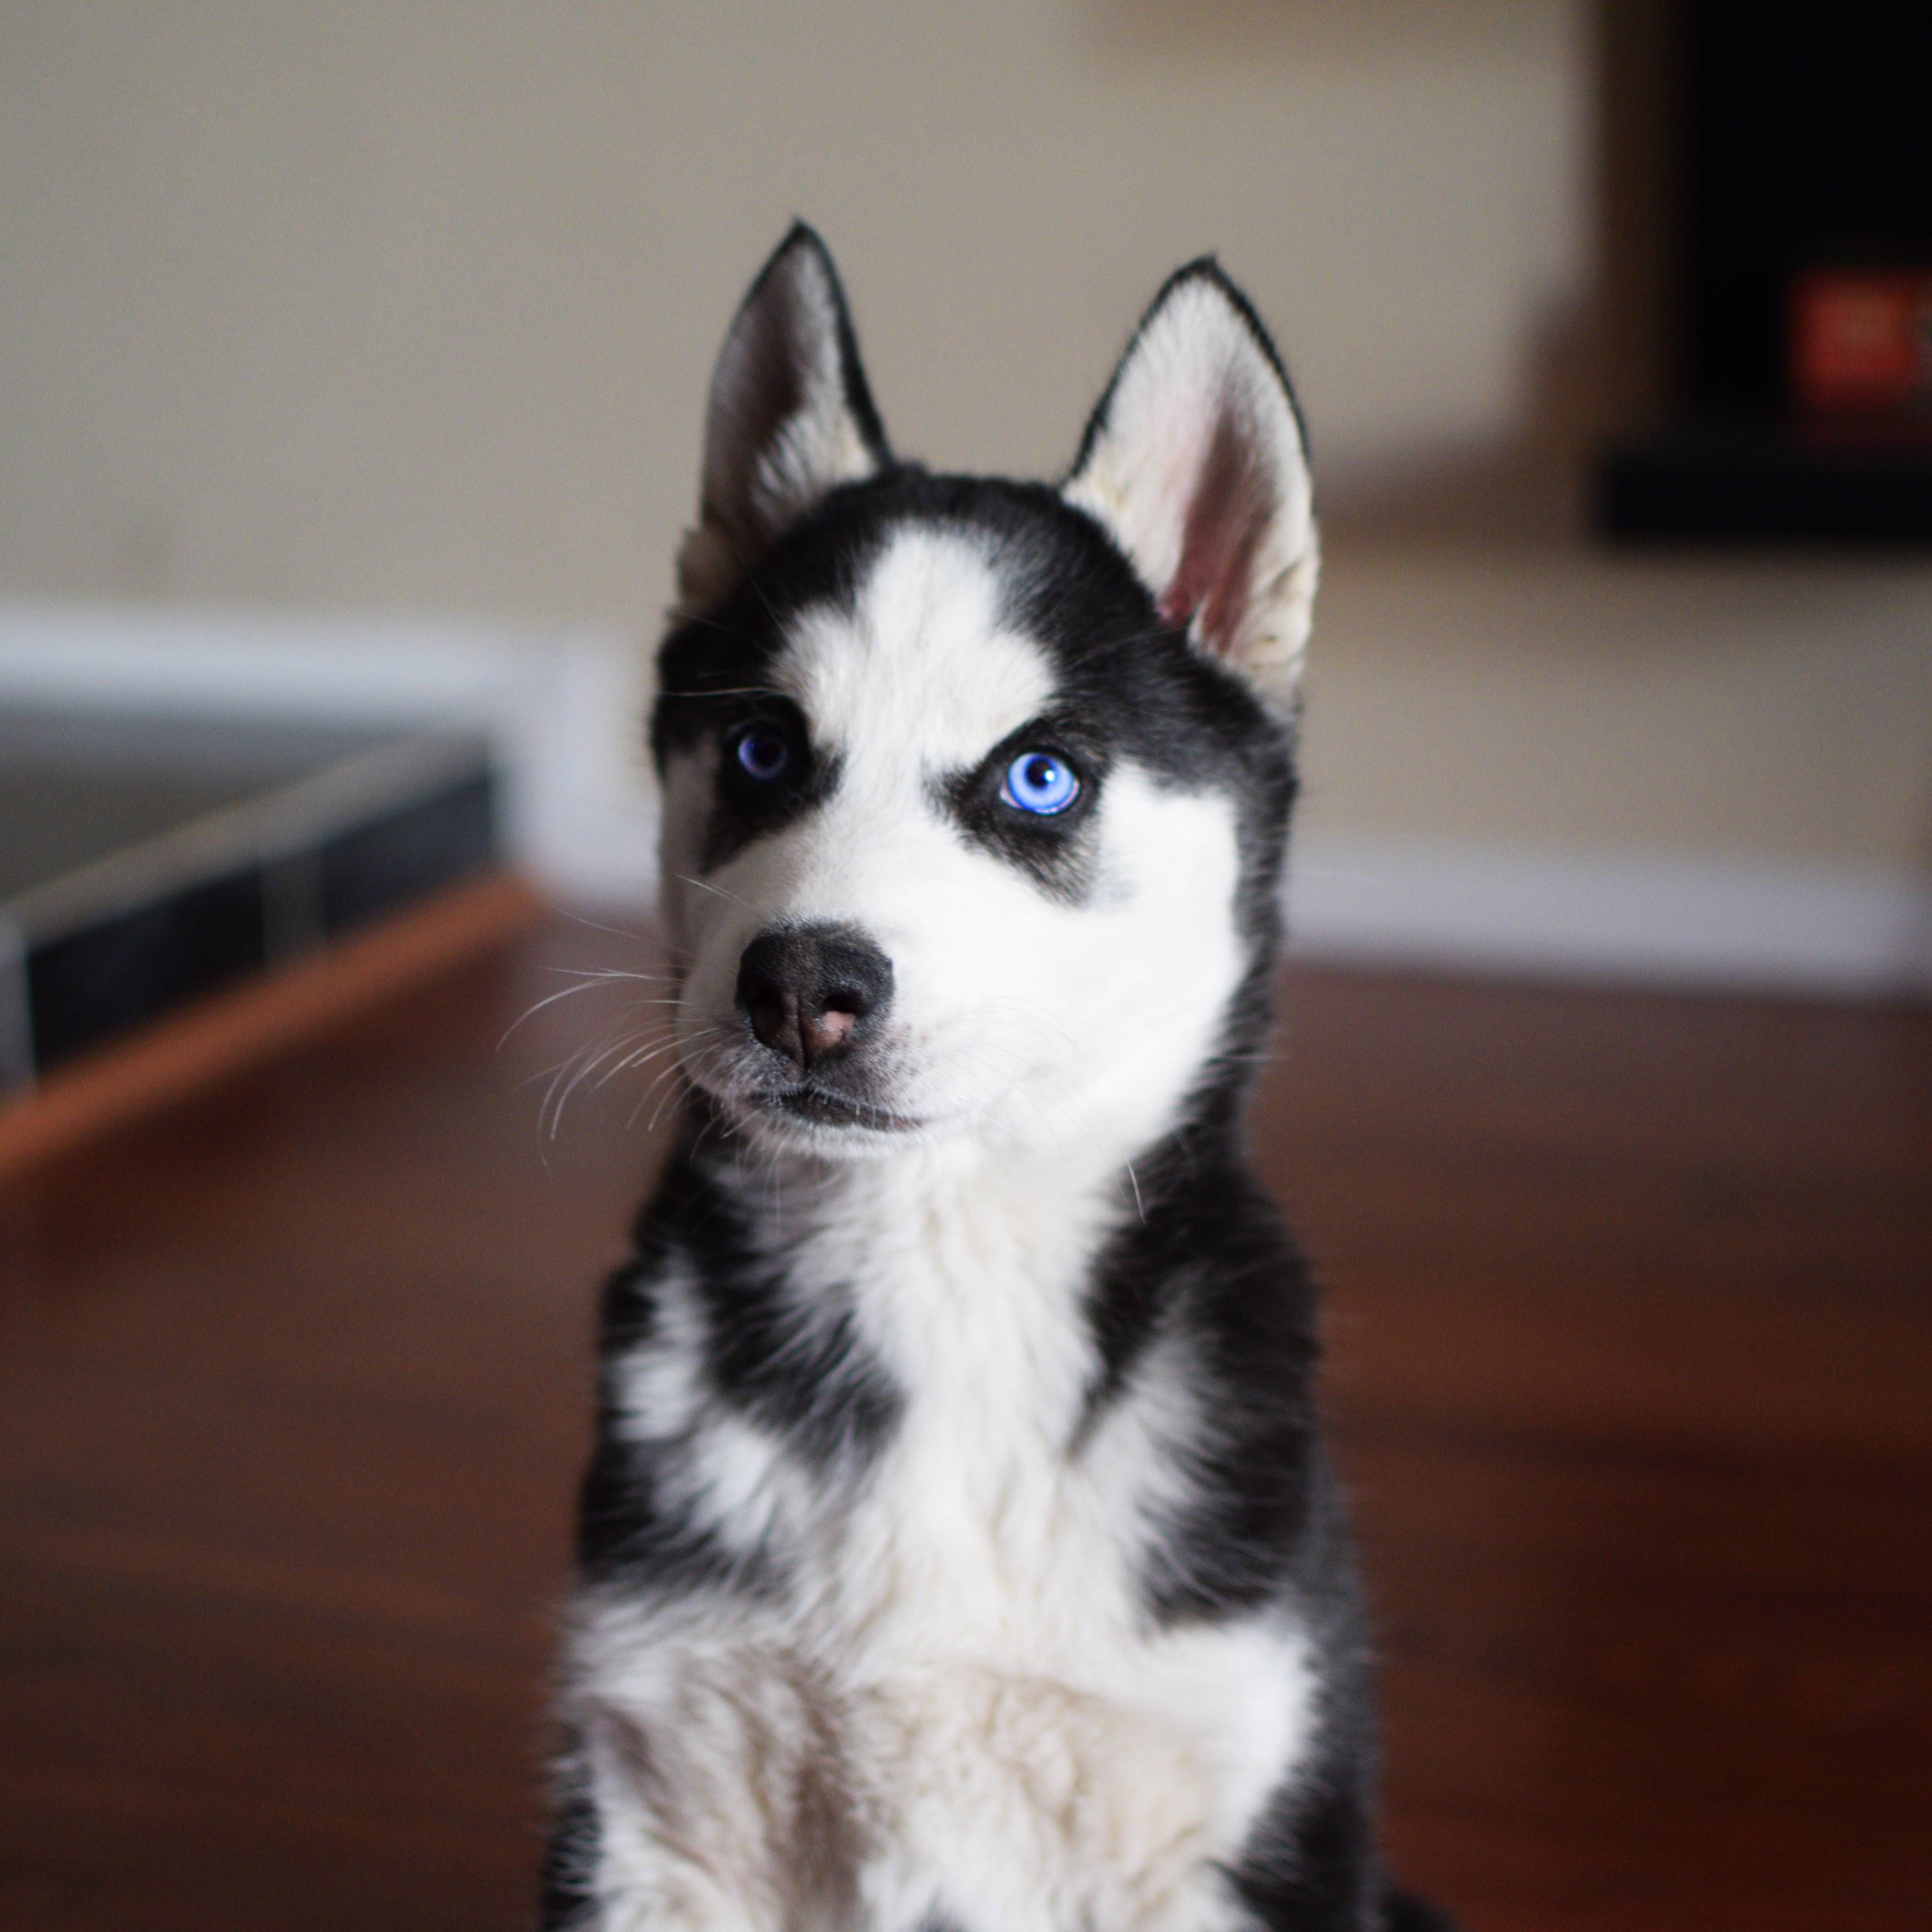 Dante The Husky Puppy S First Day Home With Us Look At Those